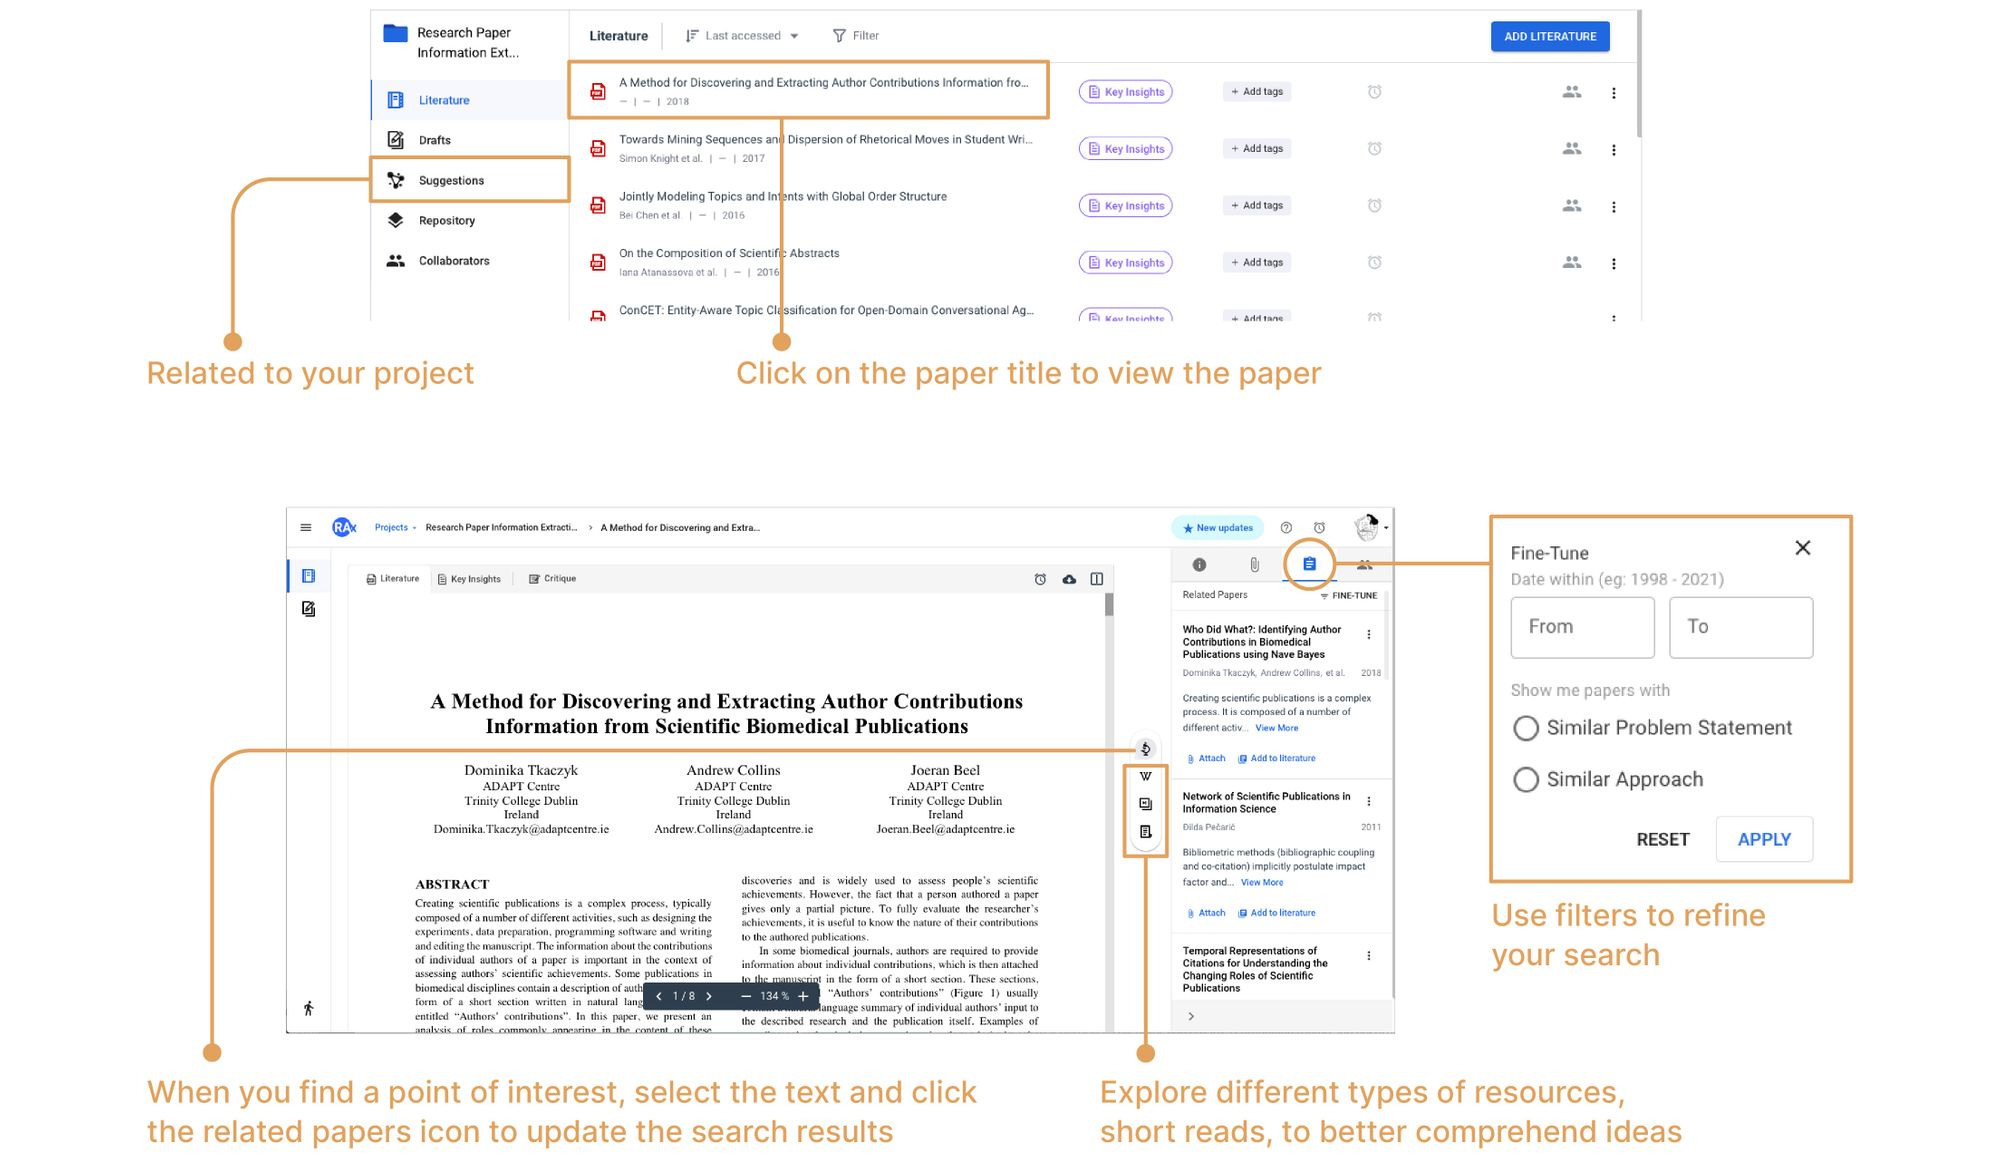 Explore related information from your project, paper or point of interest